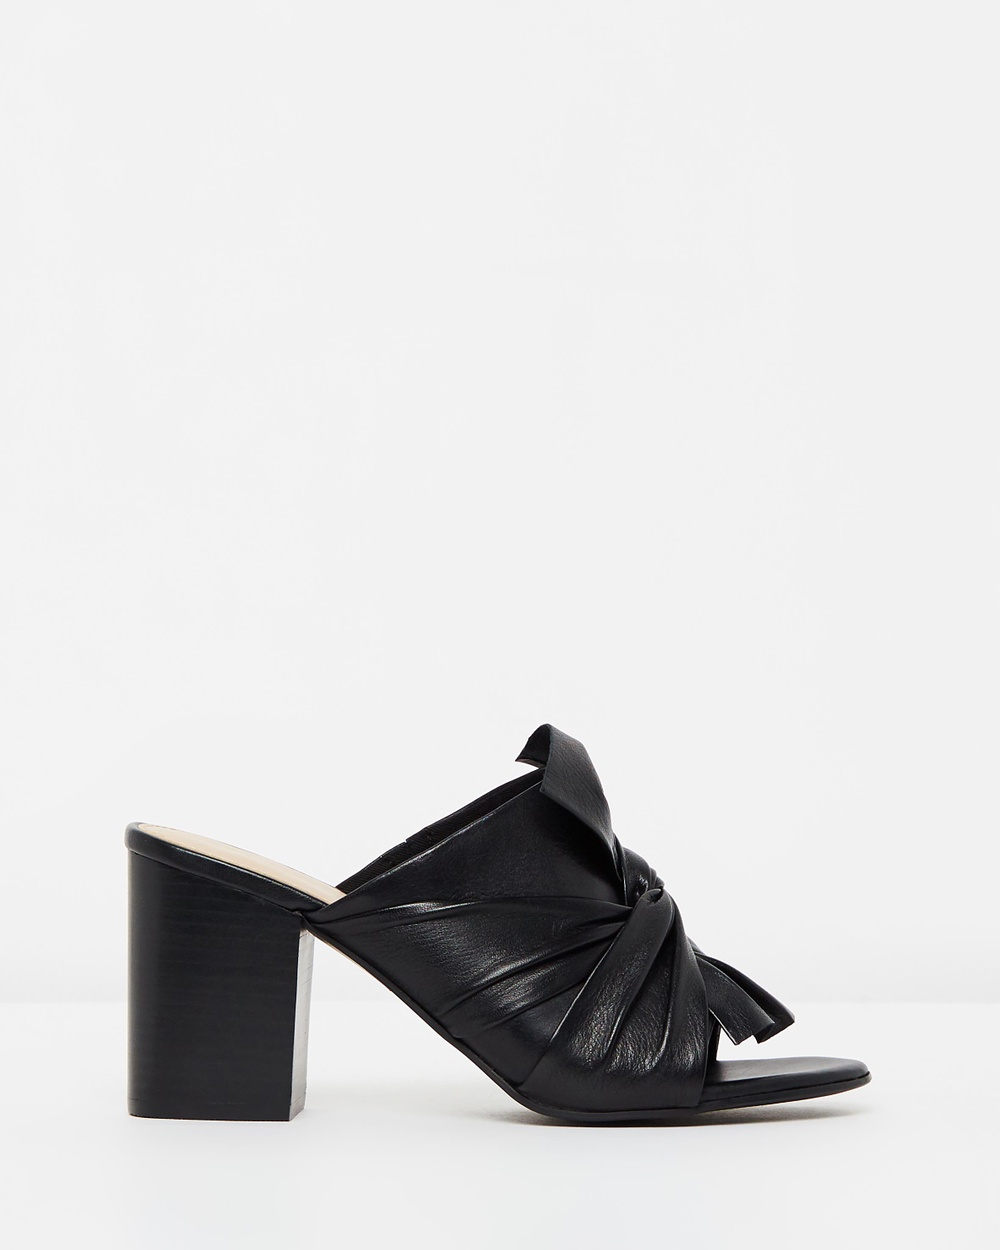 ALDO Kedeide Heels Black Leather Kedeide